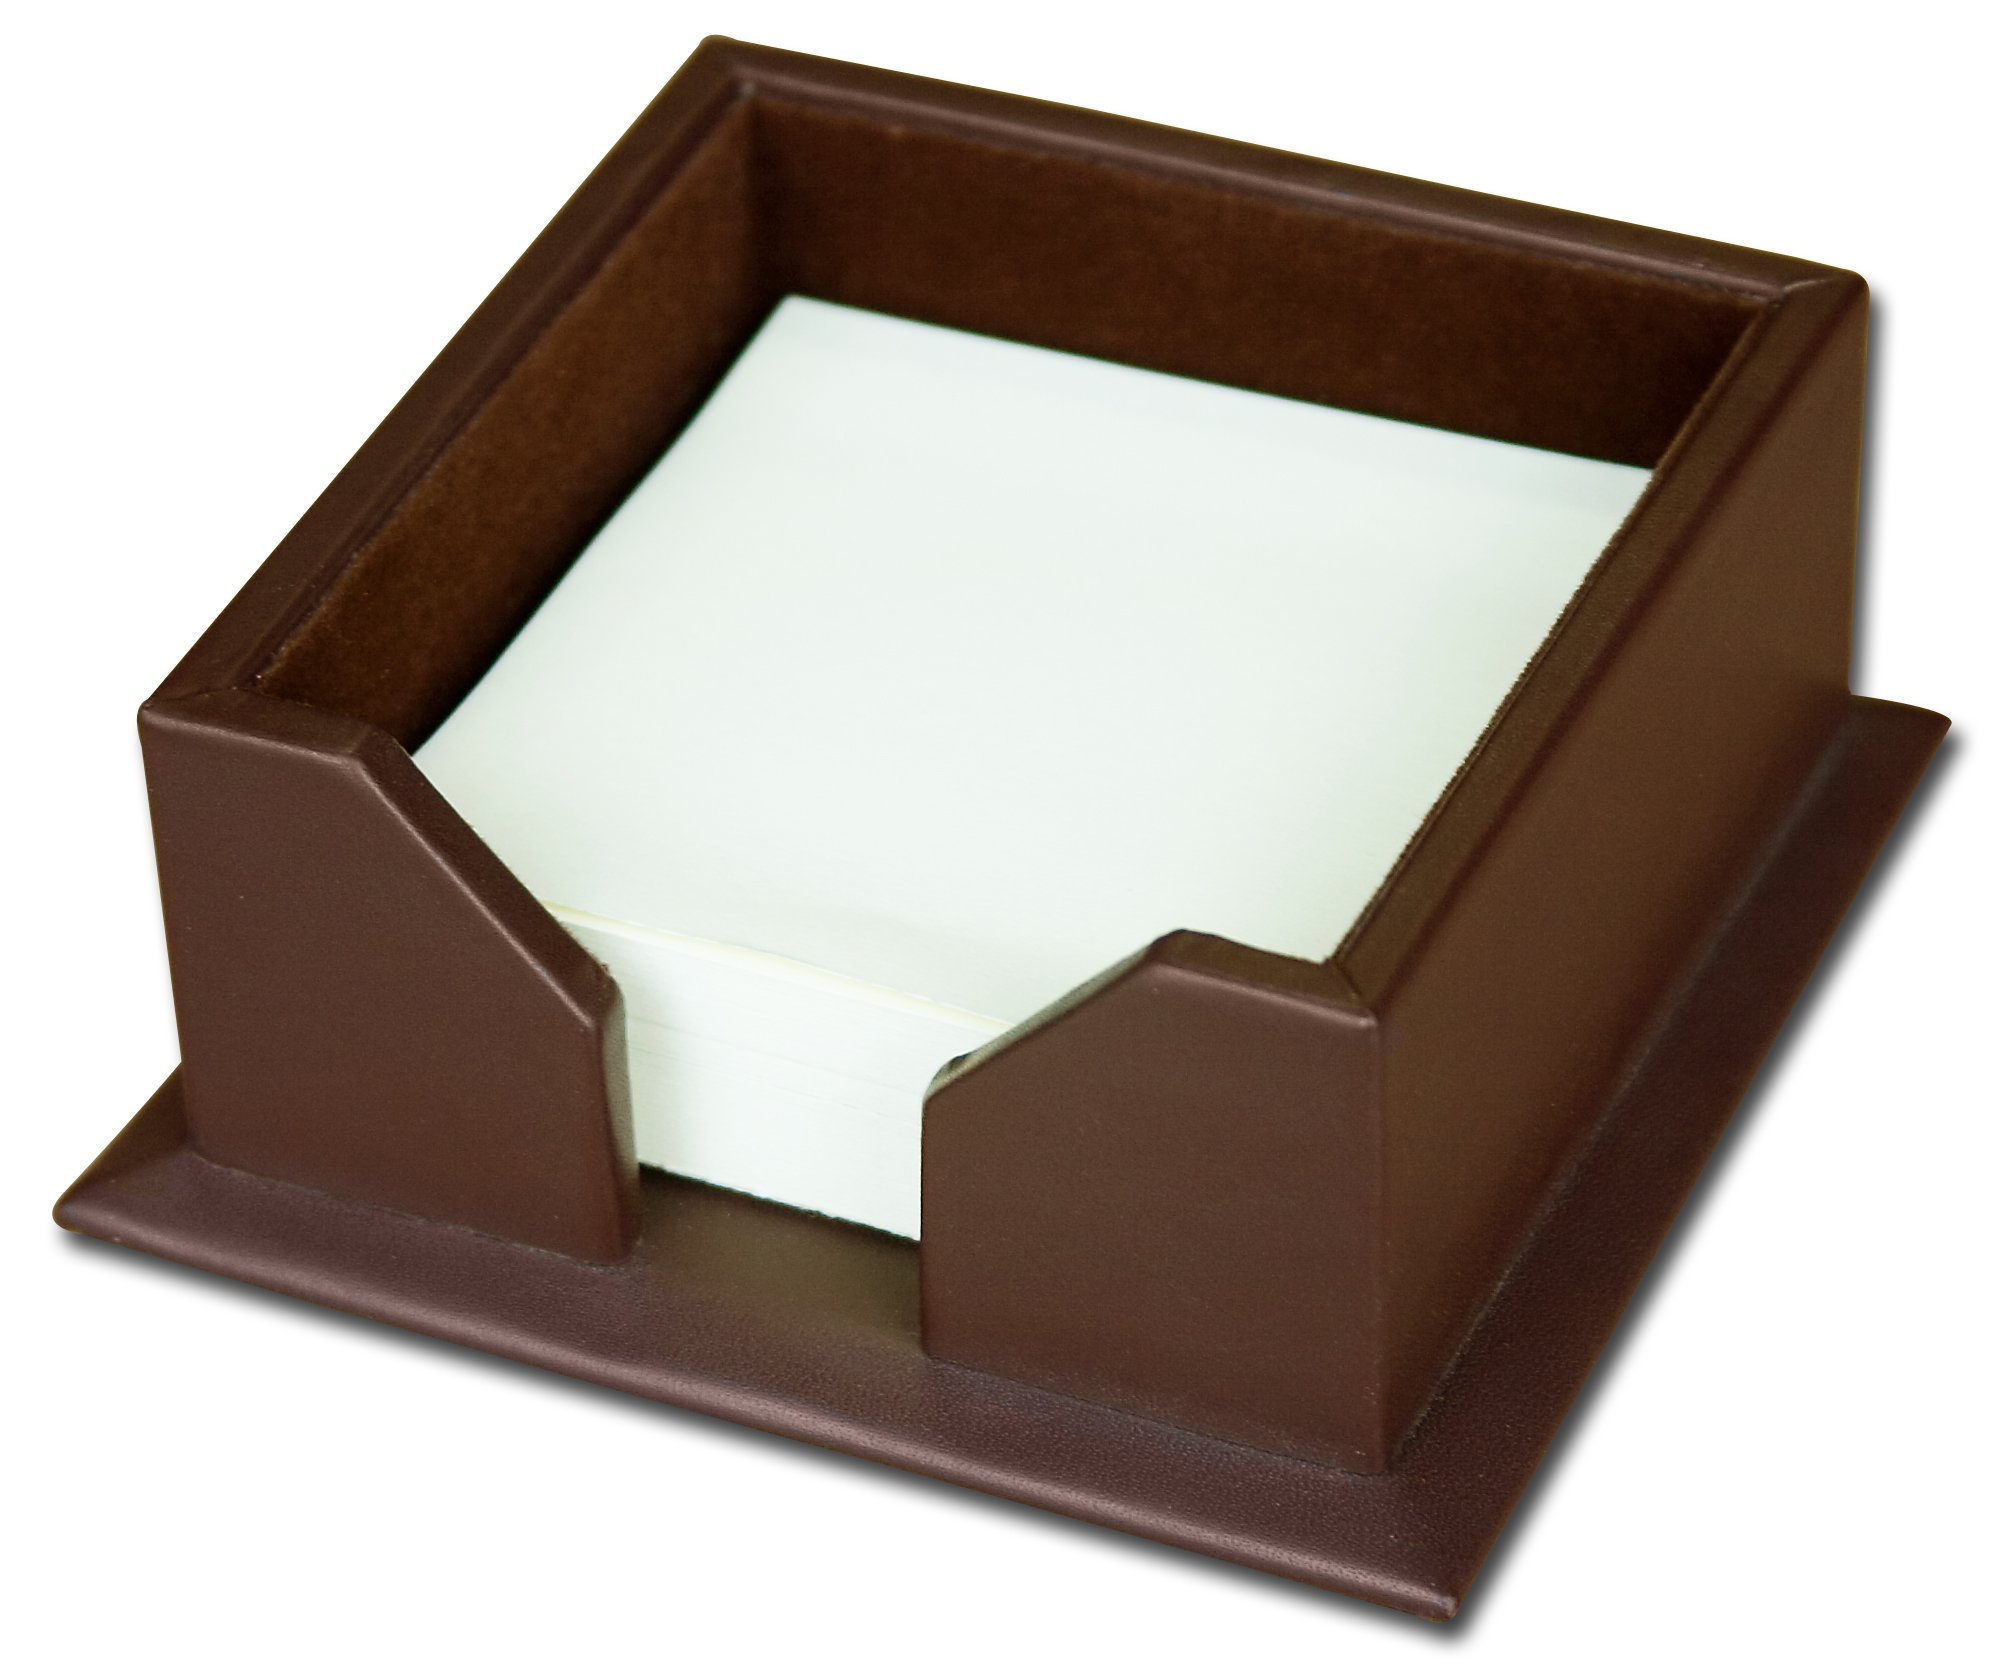 Dacasso Chocolate Brown Leather Note Holder, 3-Inch by 3-Inch by Dacasso